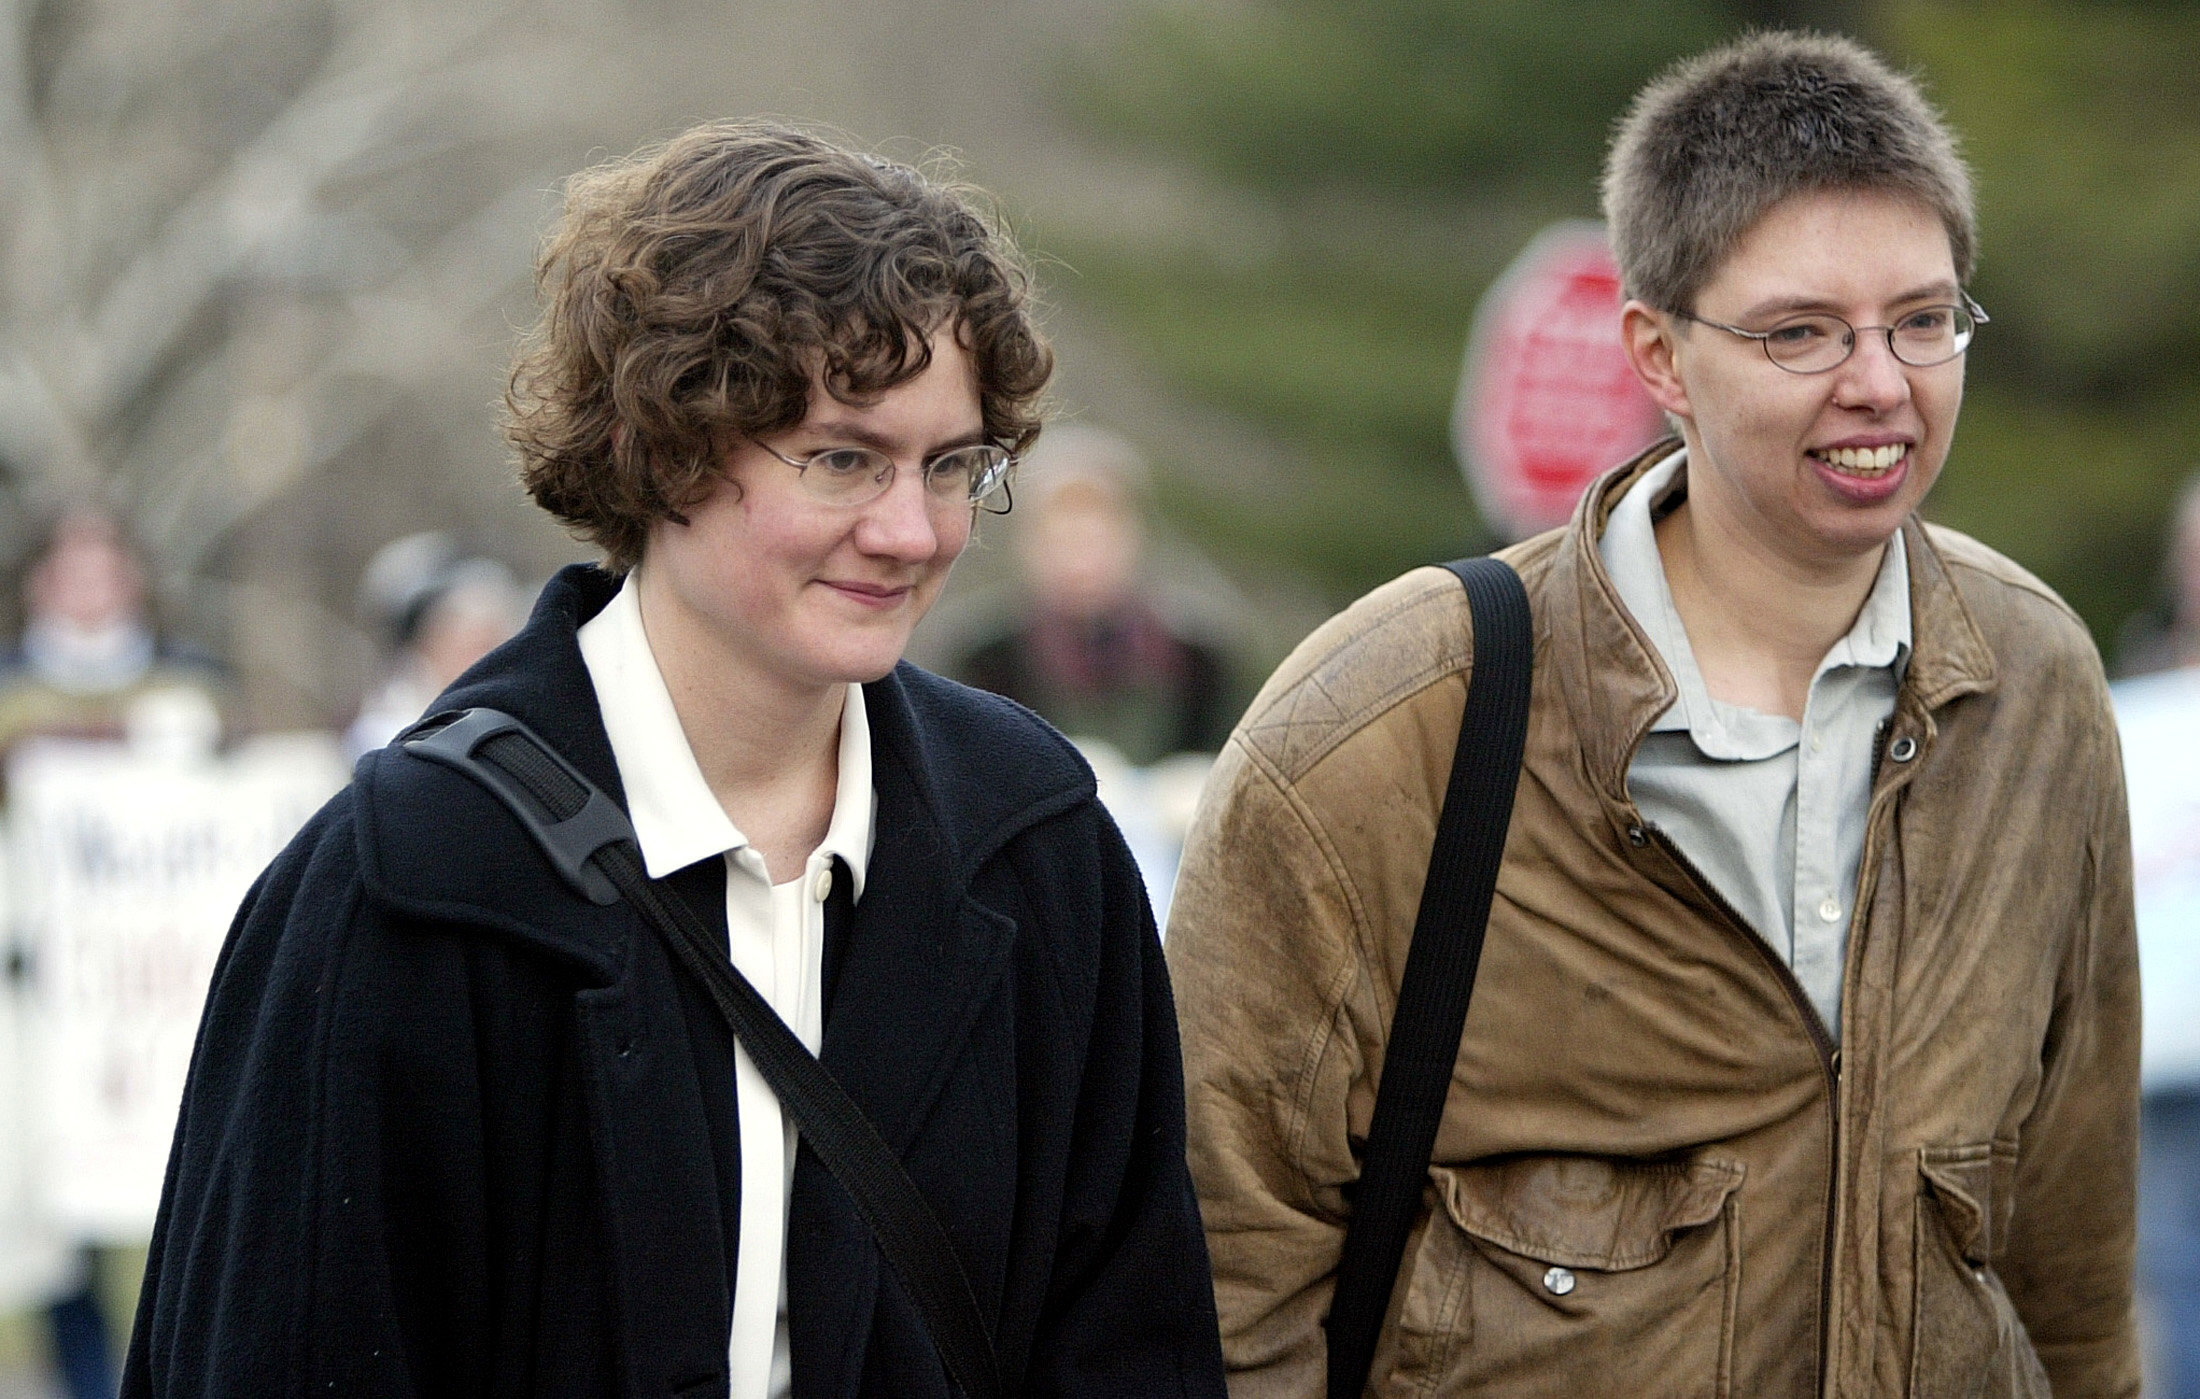 Rev. Irene Elizabeth Stroud (L) walks with her partner, Chris Paige, toward the gymnasium at Camp Innabah on the second day of Stroud's trial in Pughtown, Pennsylvania, December 2, 2004. Stroud, a Methodist minister facing a church trial for being a practicing homosexual said on Wednesday that she believes God created her as a lesbian but she does not expect to keep her job. - Getty